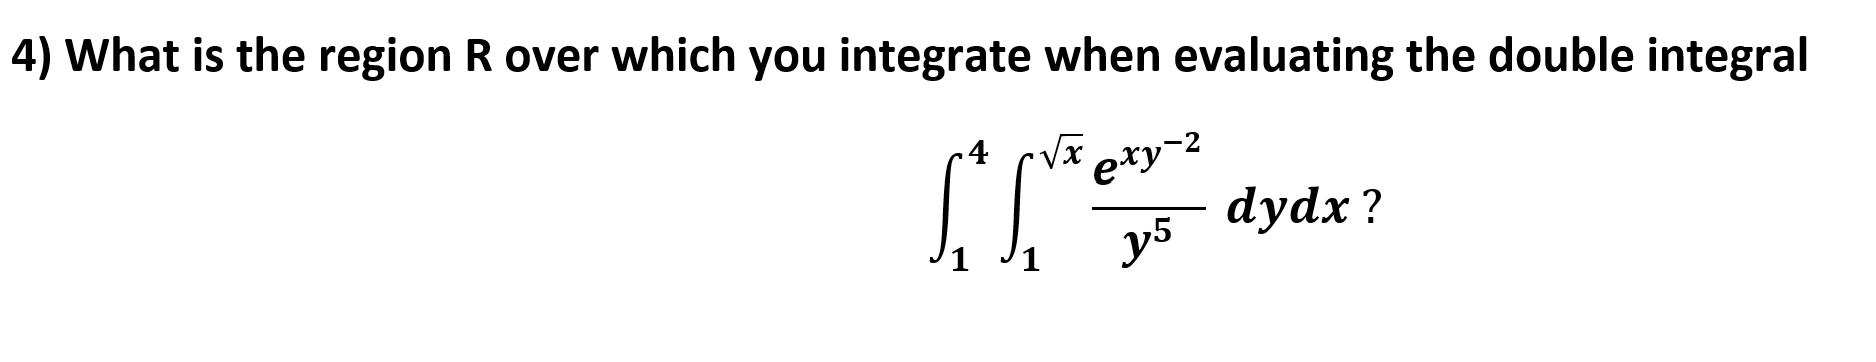 4) What is the region R over which you integrate when evaluating the double integral .4 Vxexy dydx?